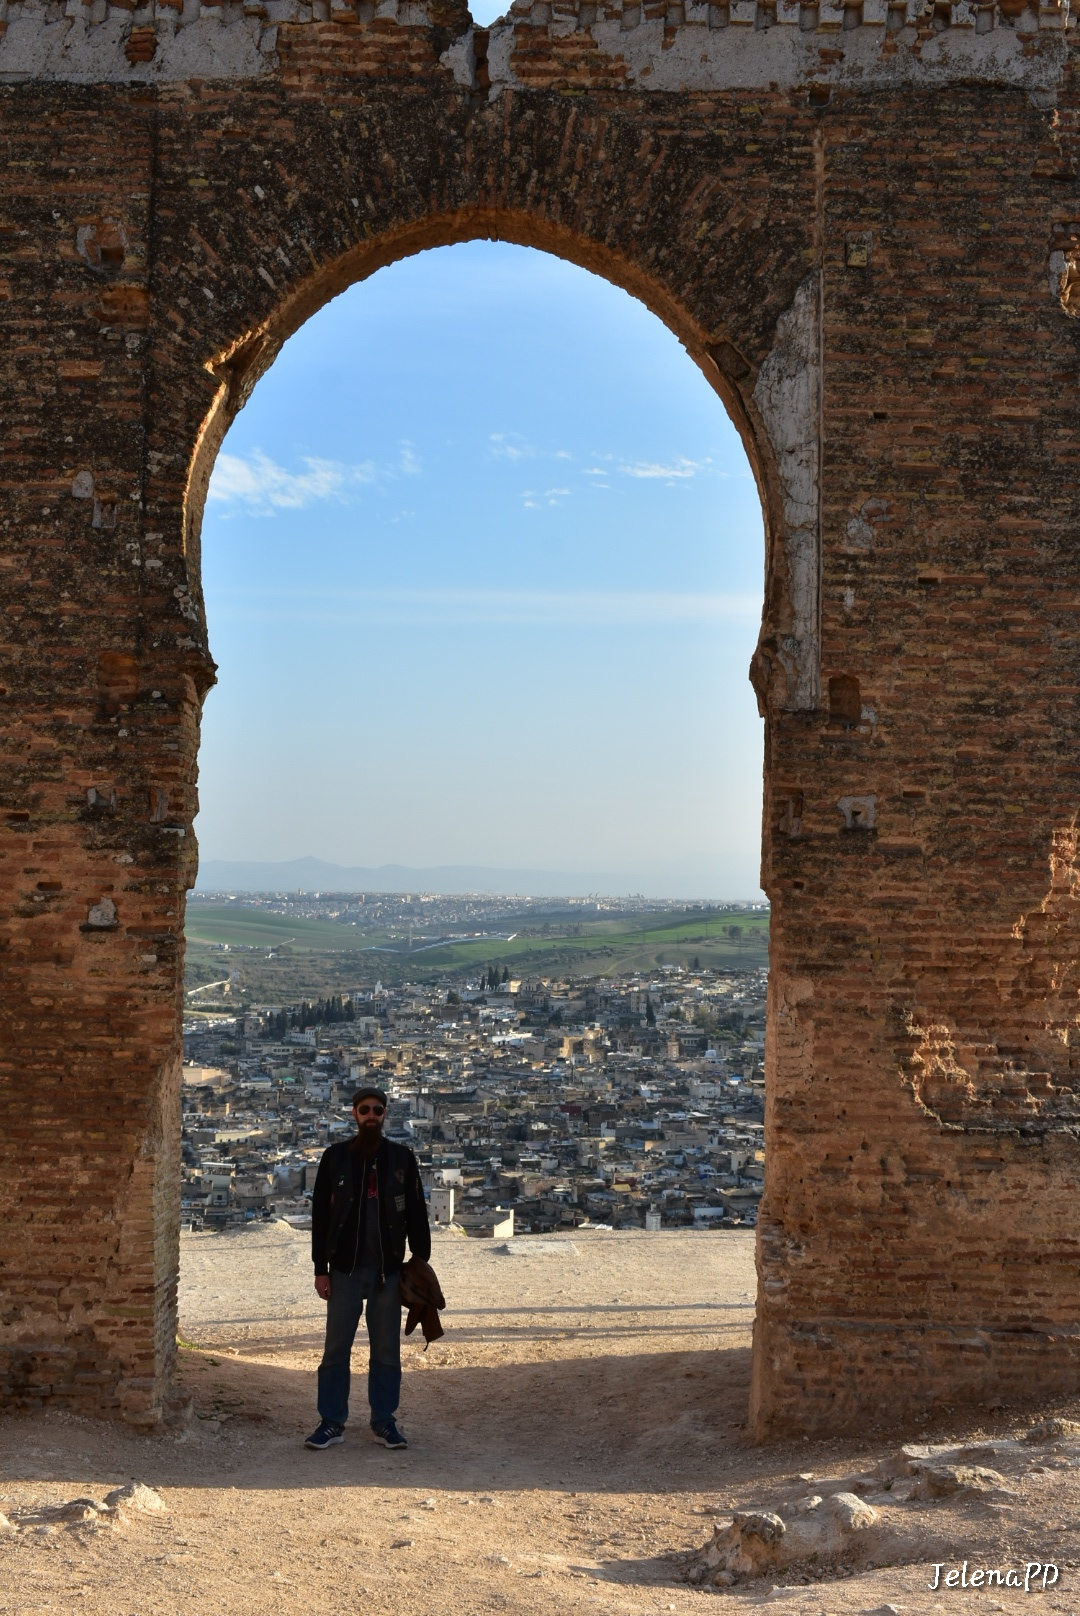 A man standing under the stone archway with Fes in the background.